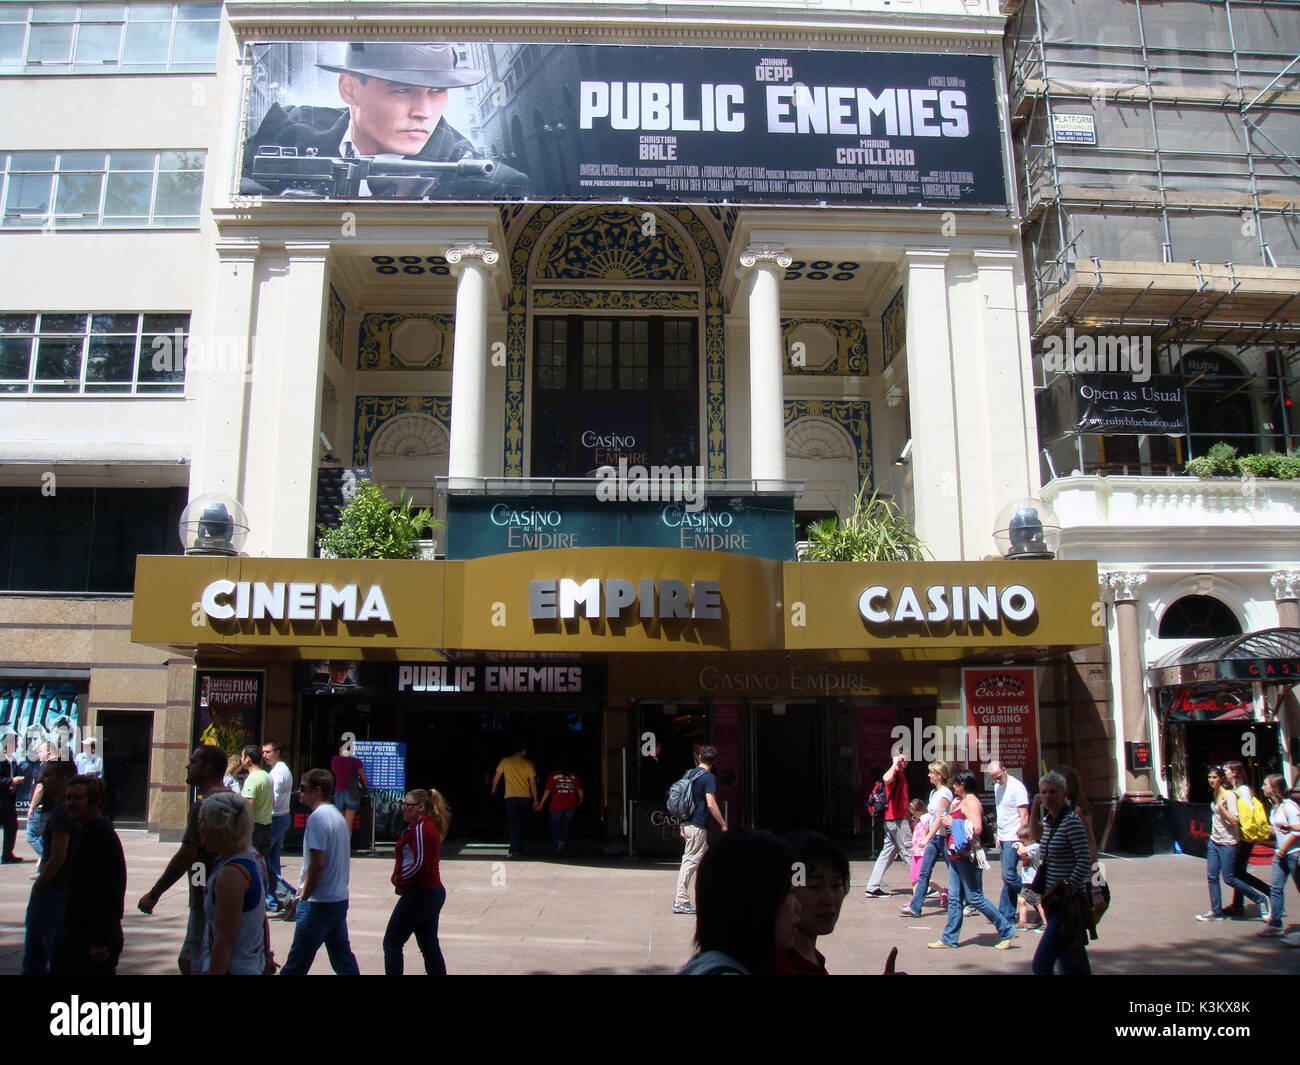 THE EMPIRE CINEMA, LEICESTER SQUARE, LONDON, July 2009 Screening Public Enemies starring Johnny Depp Stock Photo